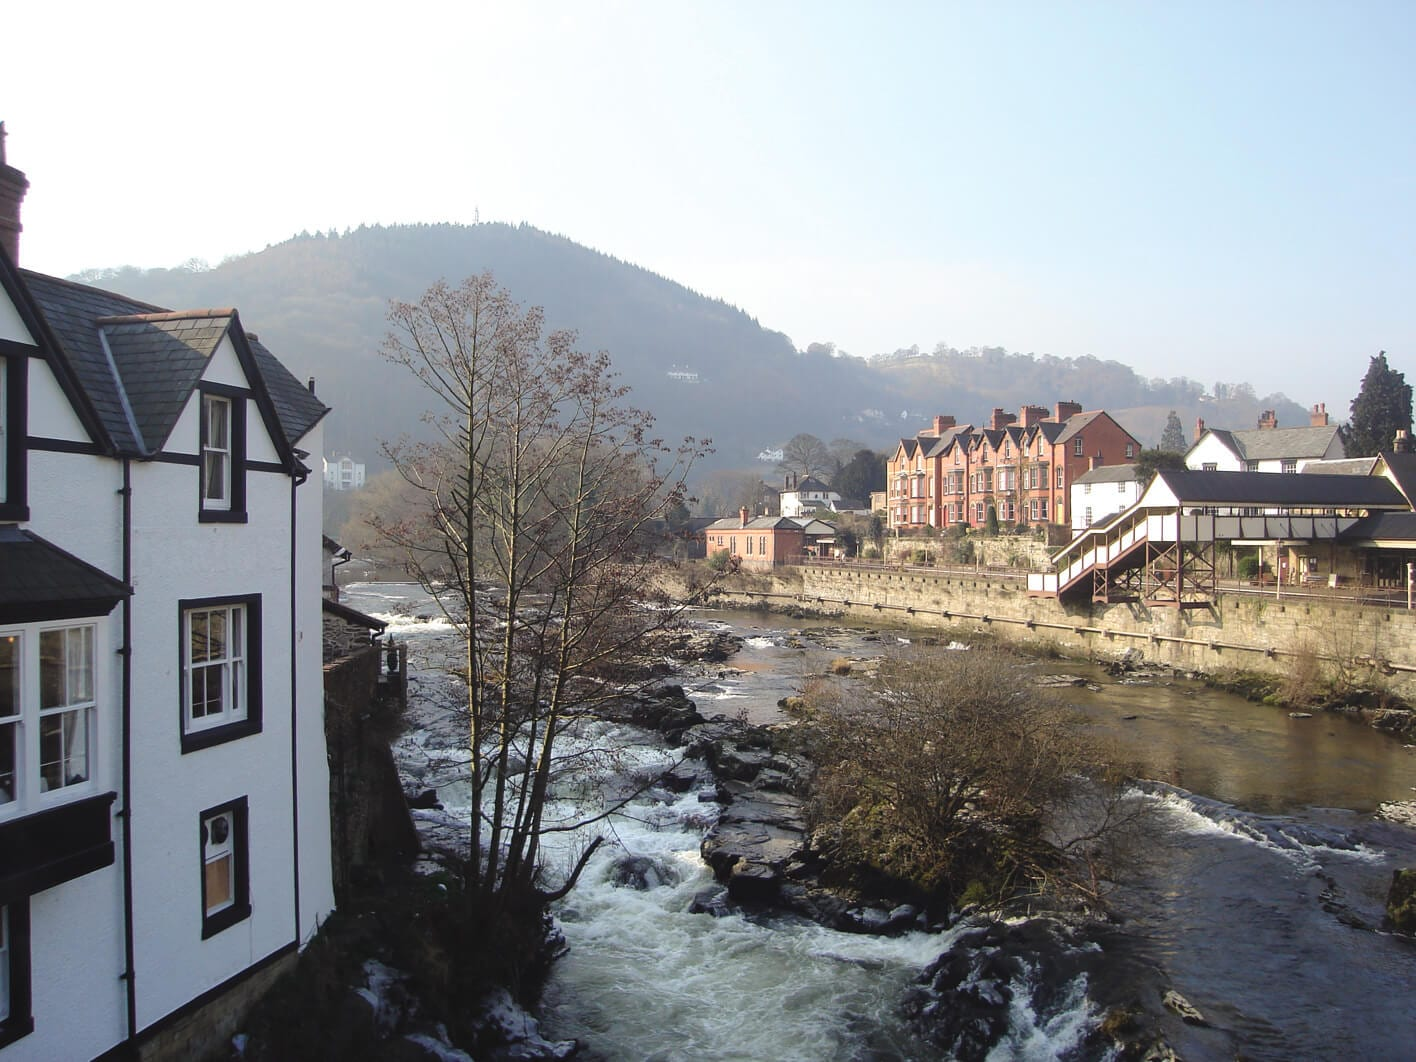 Llangollen - Where Wales welcomes the world